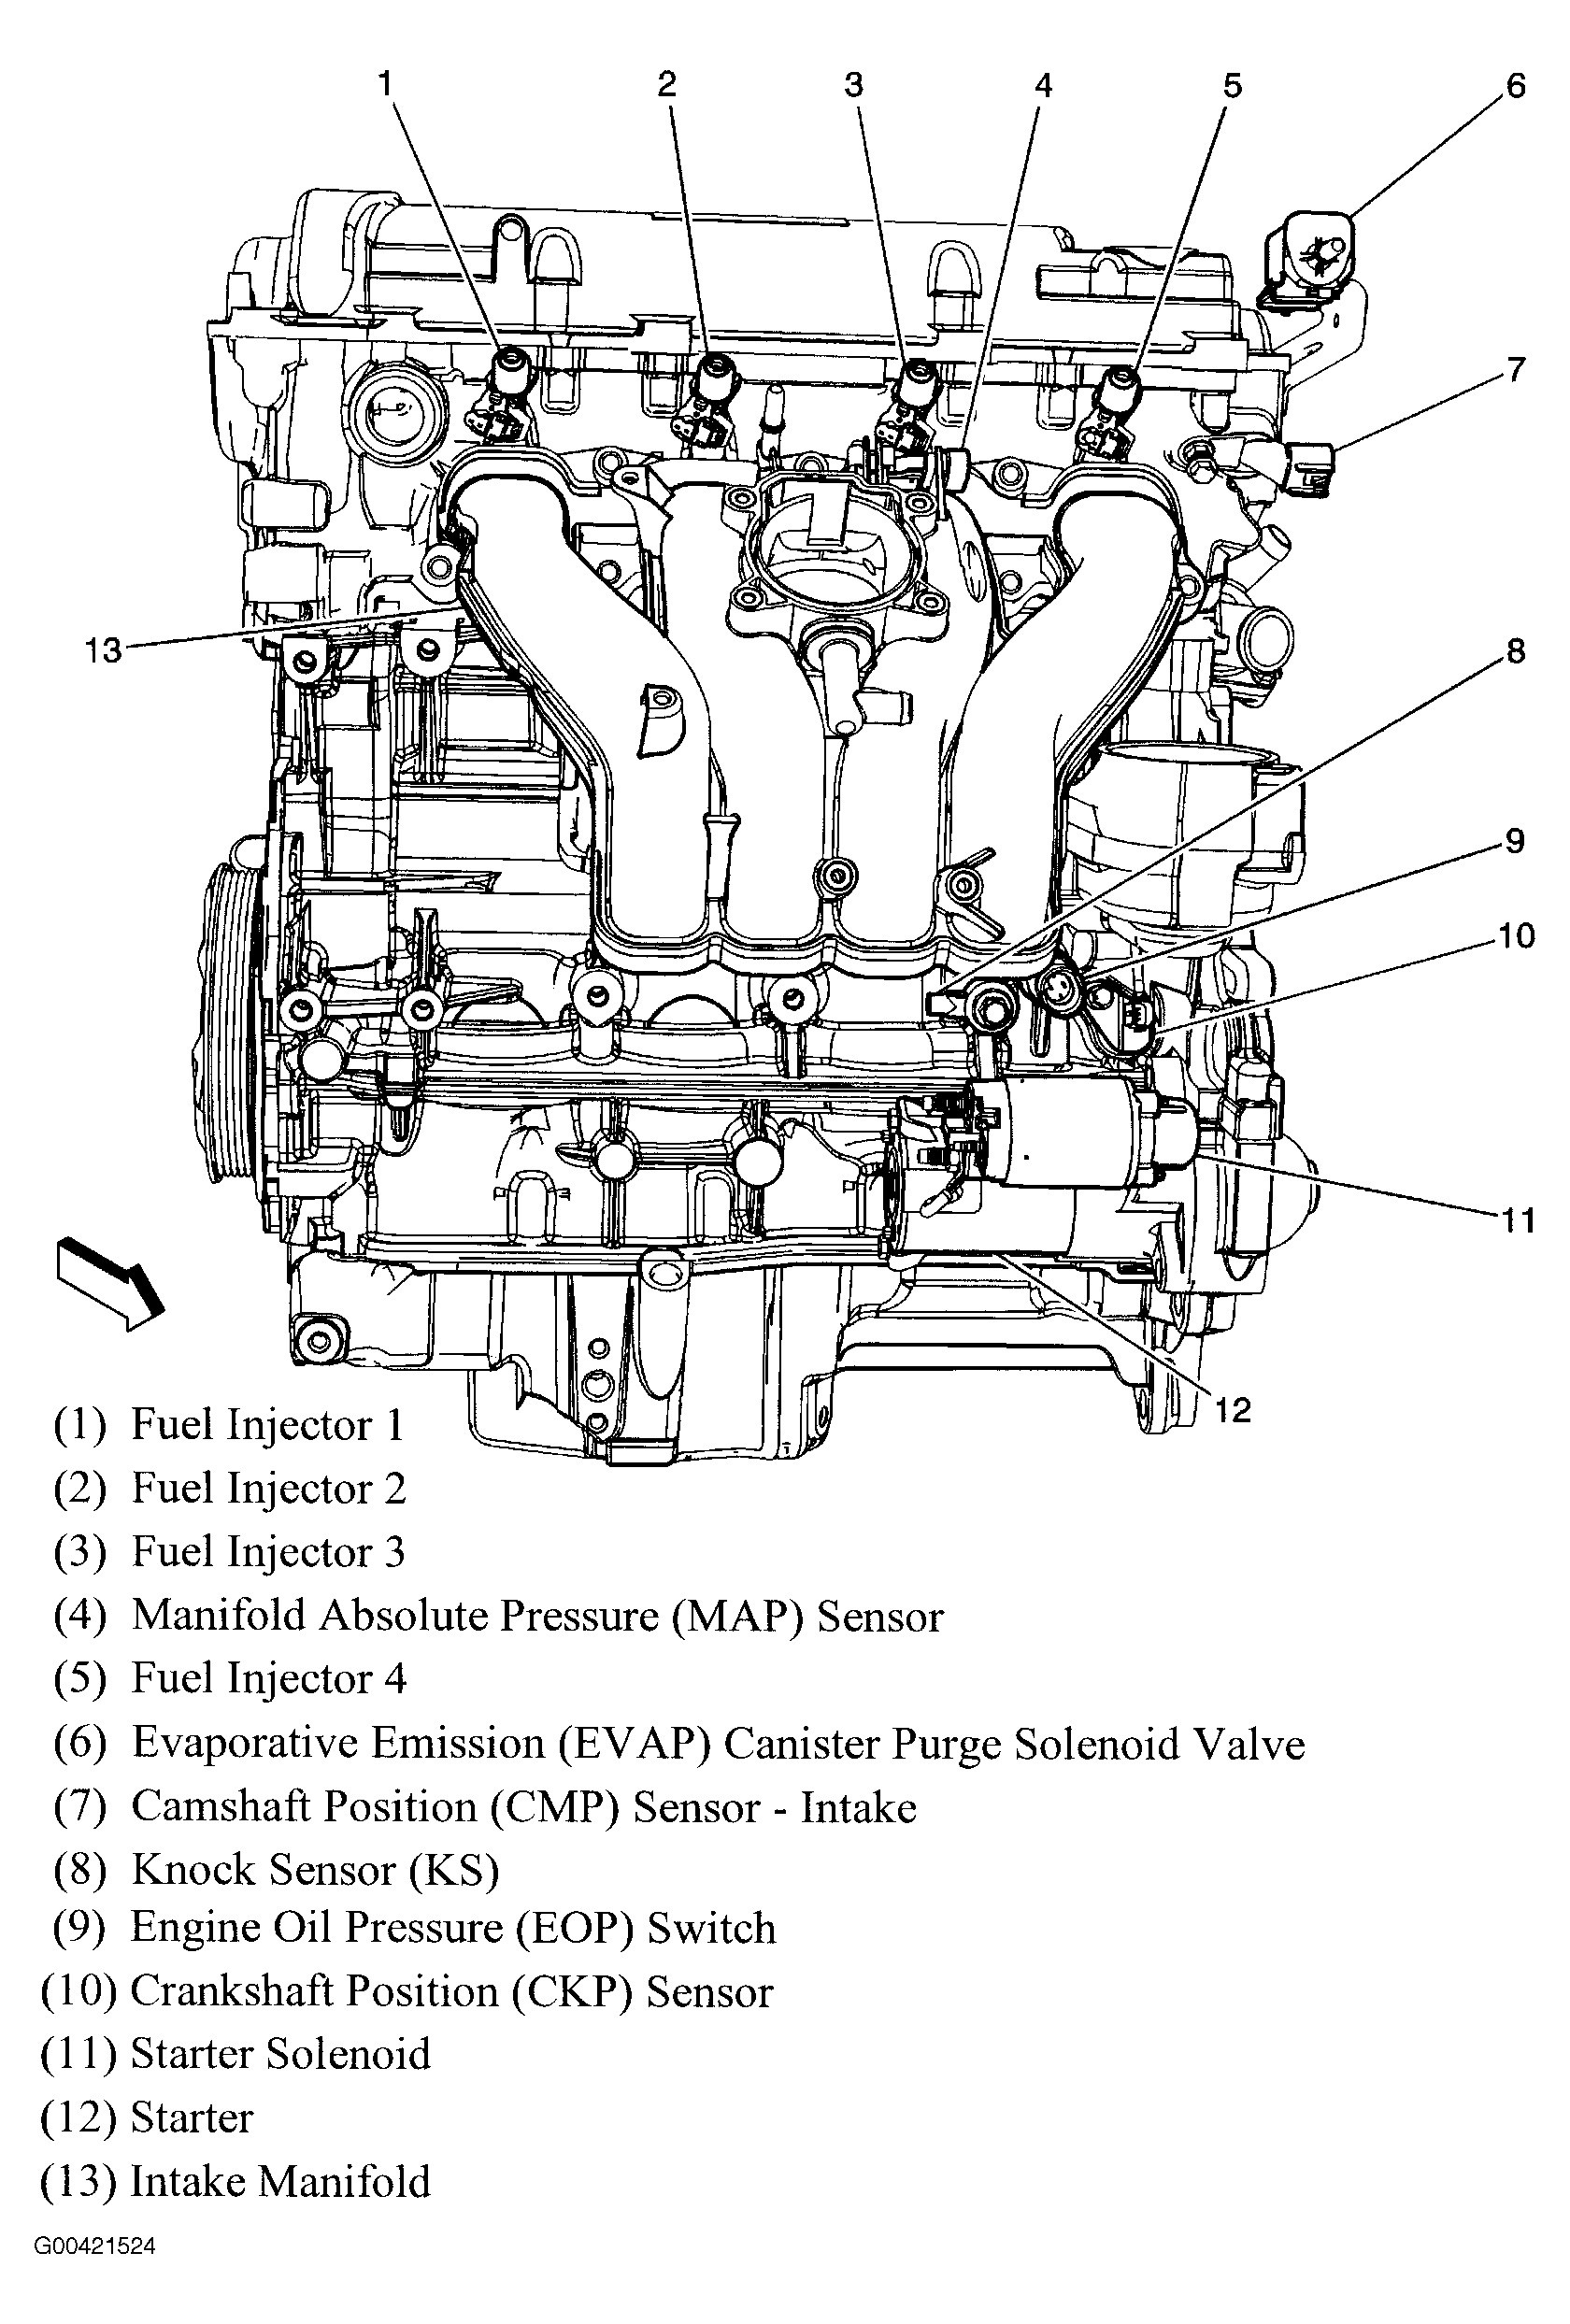 2004 chevy aveo parts diagram wiring diagram split 2010 aveo engine diagram 11 2 manualuniverse co u2022 2004 chevy aveo parts diagram